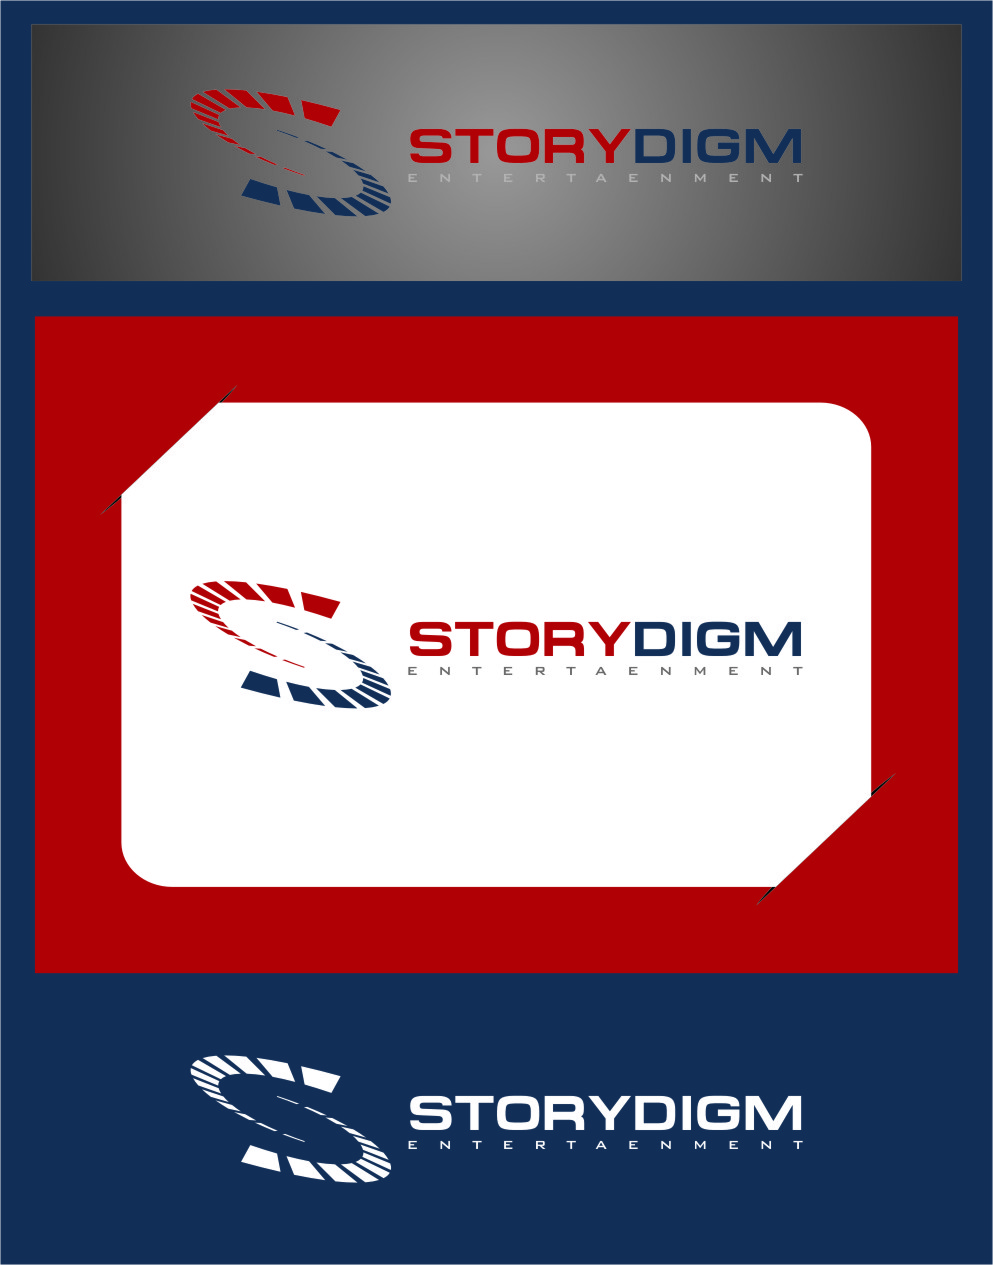 Logo Design by RasYa Muhammad Athaya - Entry No. 36 in the Logo Design Contest Inspiring Logo Design for Storydigm Entertainment.